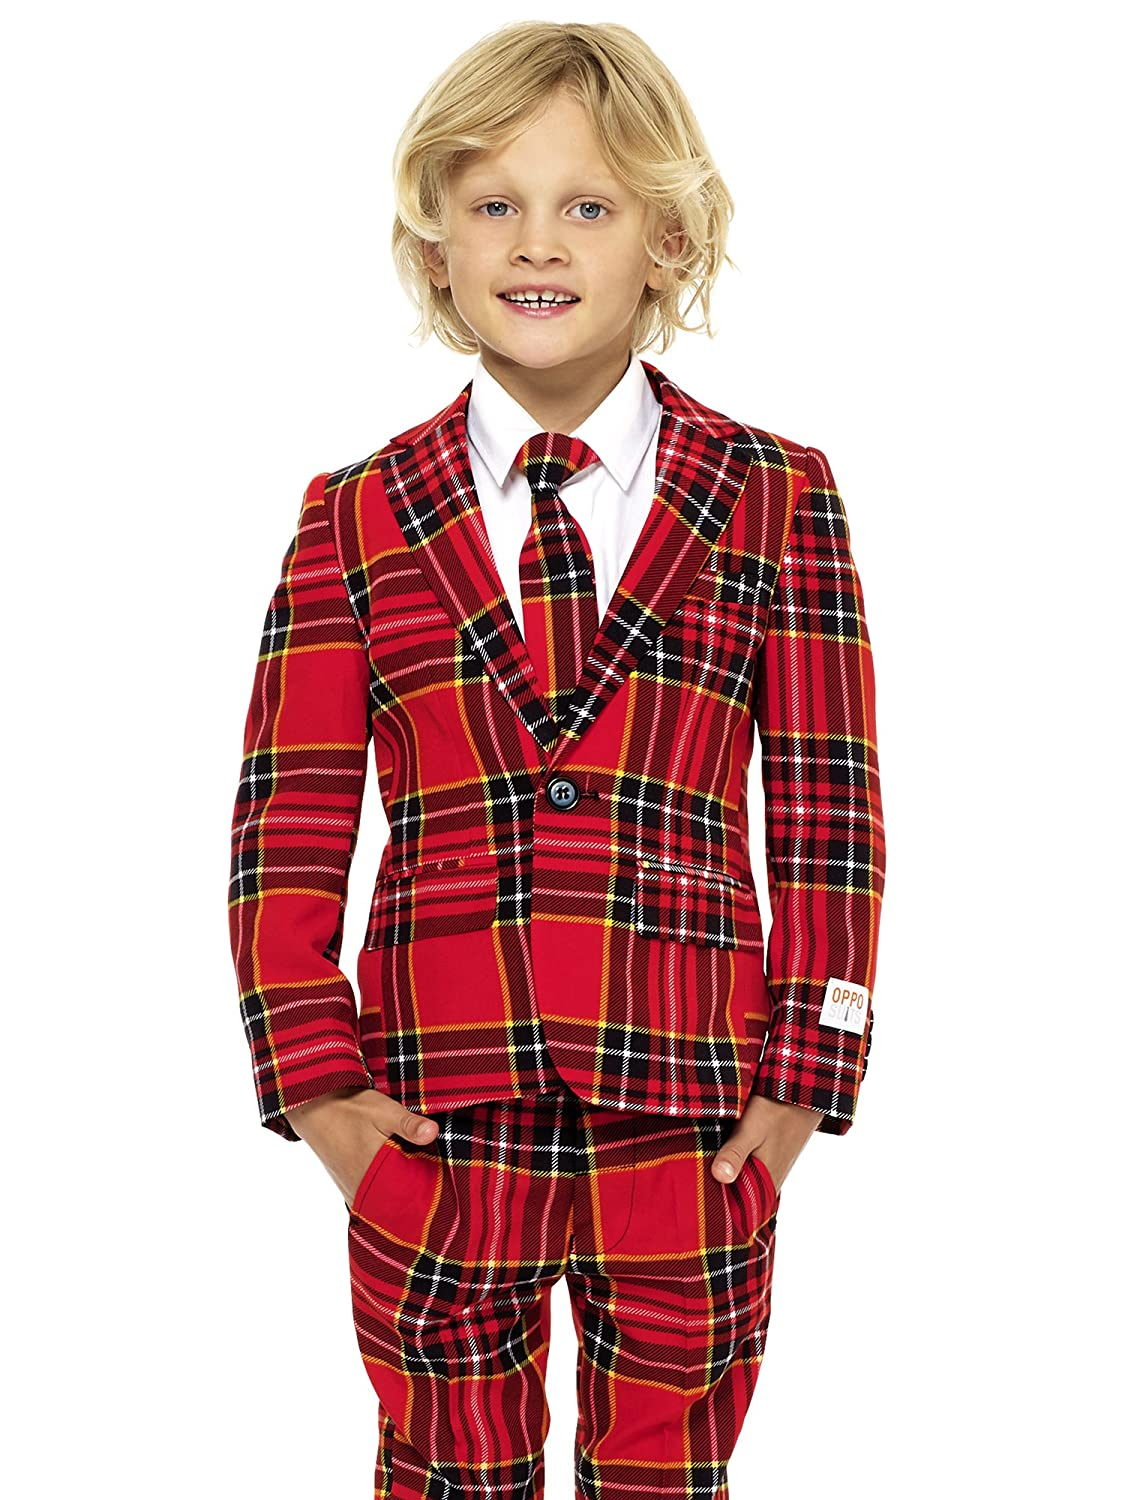 Opposuits Fun Christmas Suits - Full Set: Jacket, Pants and Tie OSBO-Boy-Winter